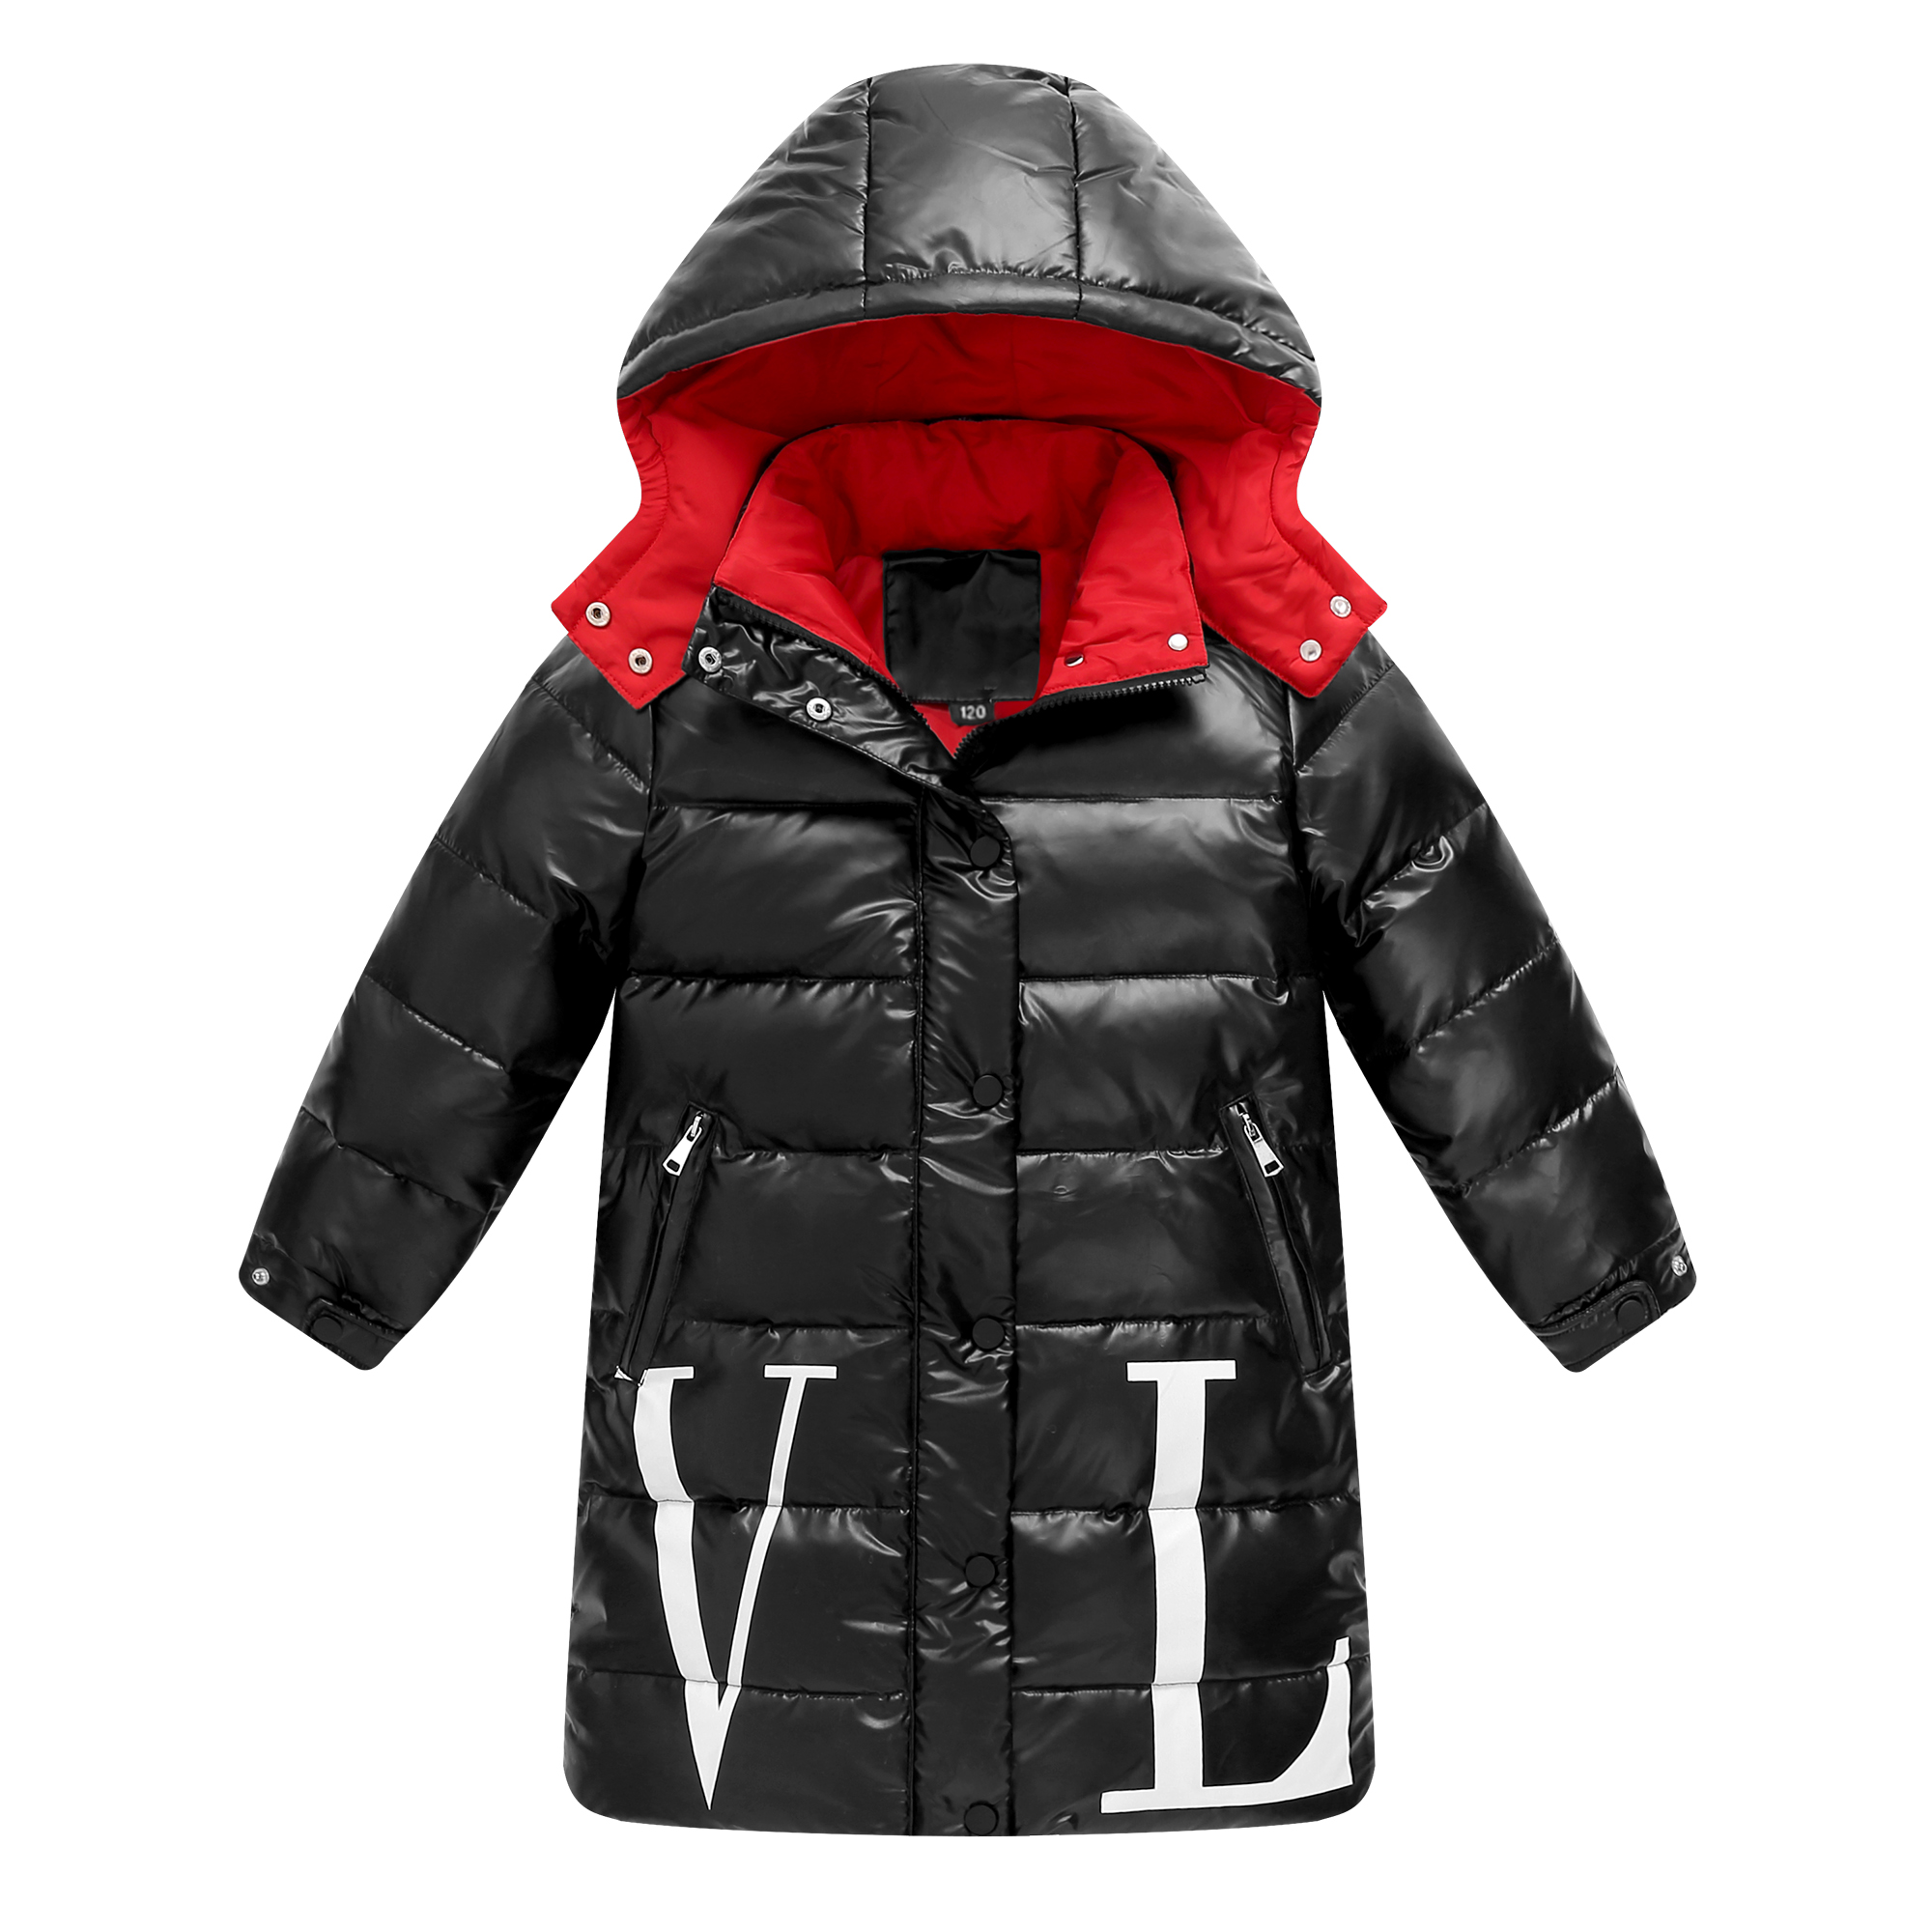 Jackets Clothing Degrees-Coats Kids Parka White-Duck-Down Girls Waterproof Winter Warm